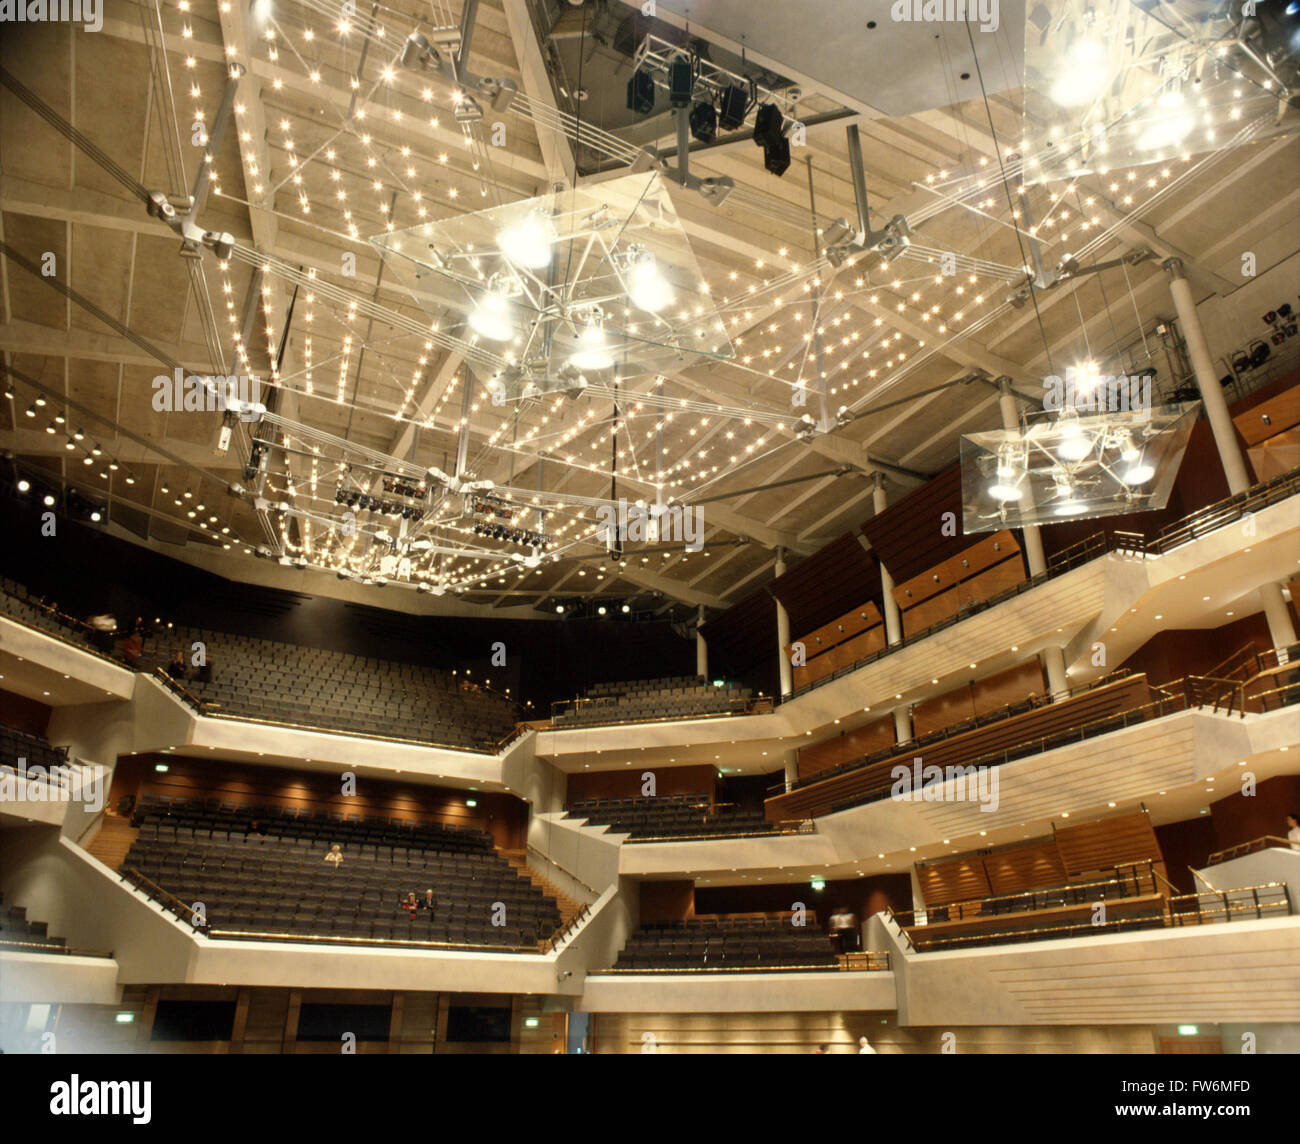 Commercial Lighting Manchester: Bridgewater Hall Manchester Stock Photos & Bridgewater